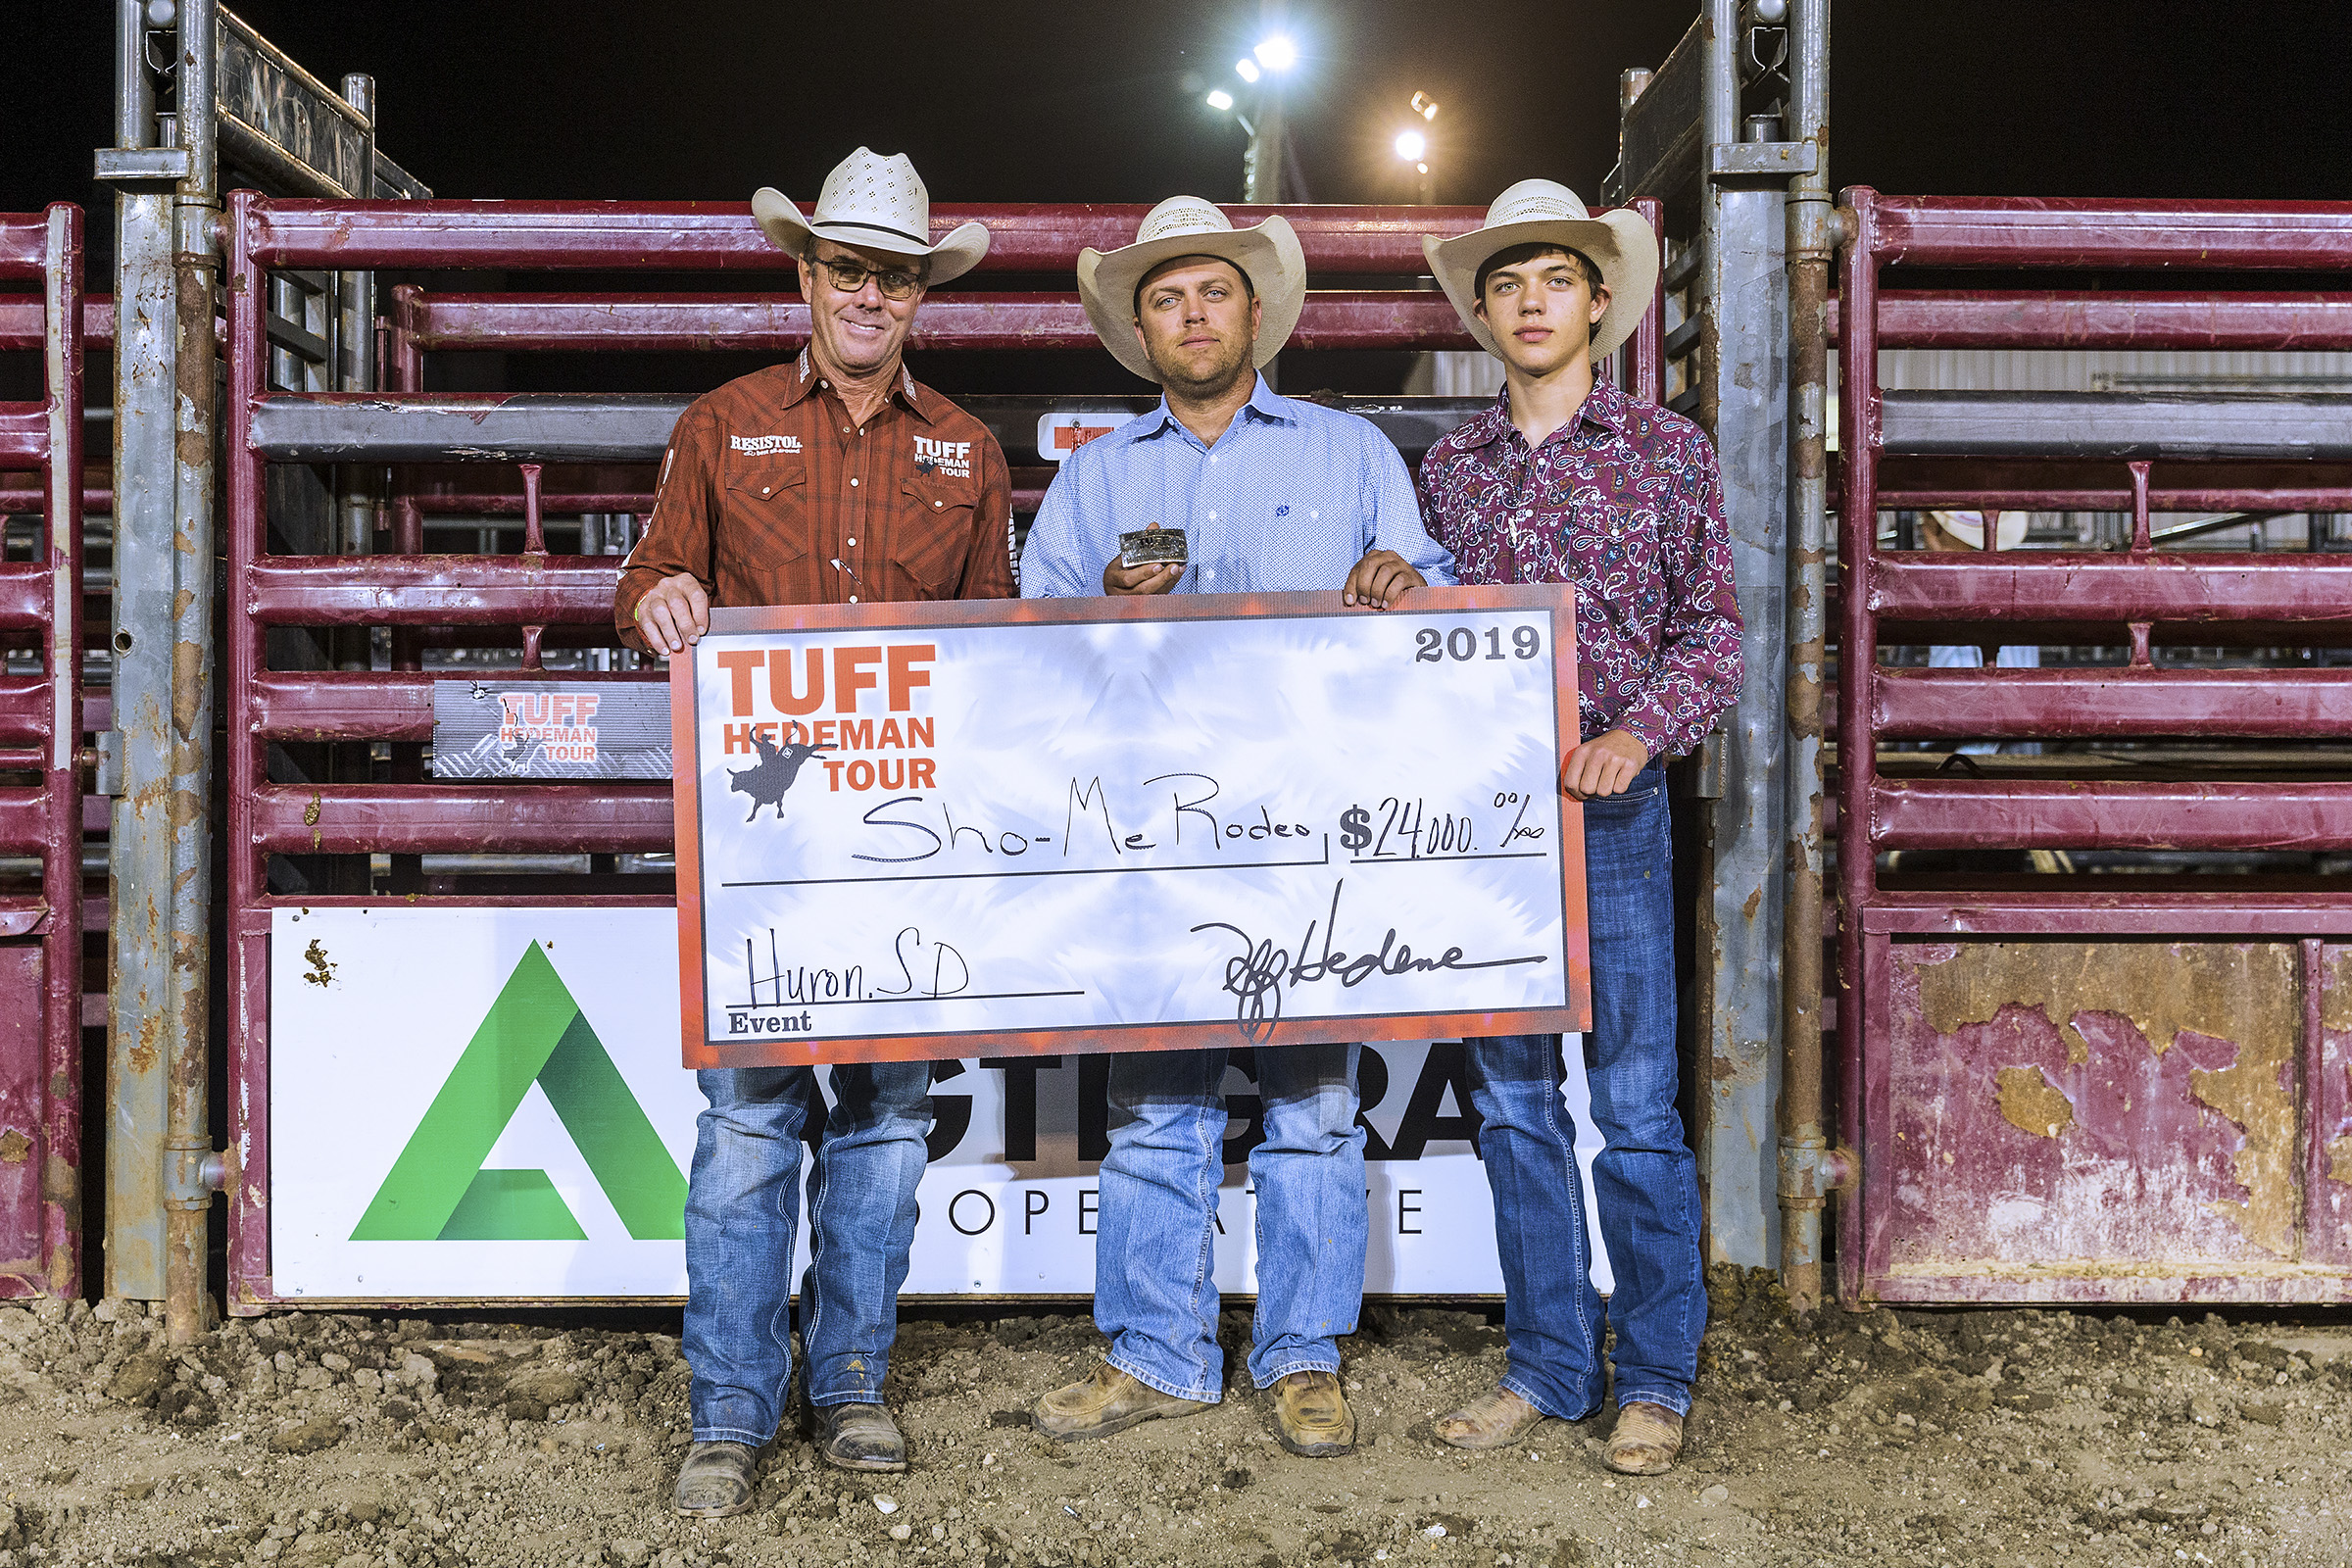 Sho-Me Rodeo WIns Tuff Hedeman Bull Team Competition on night two of the Bull Bash in Huron. Show-Me is owned by Joe Anderson of Buffalo, Missouri.